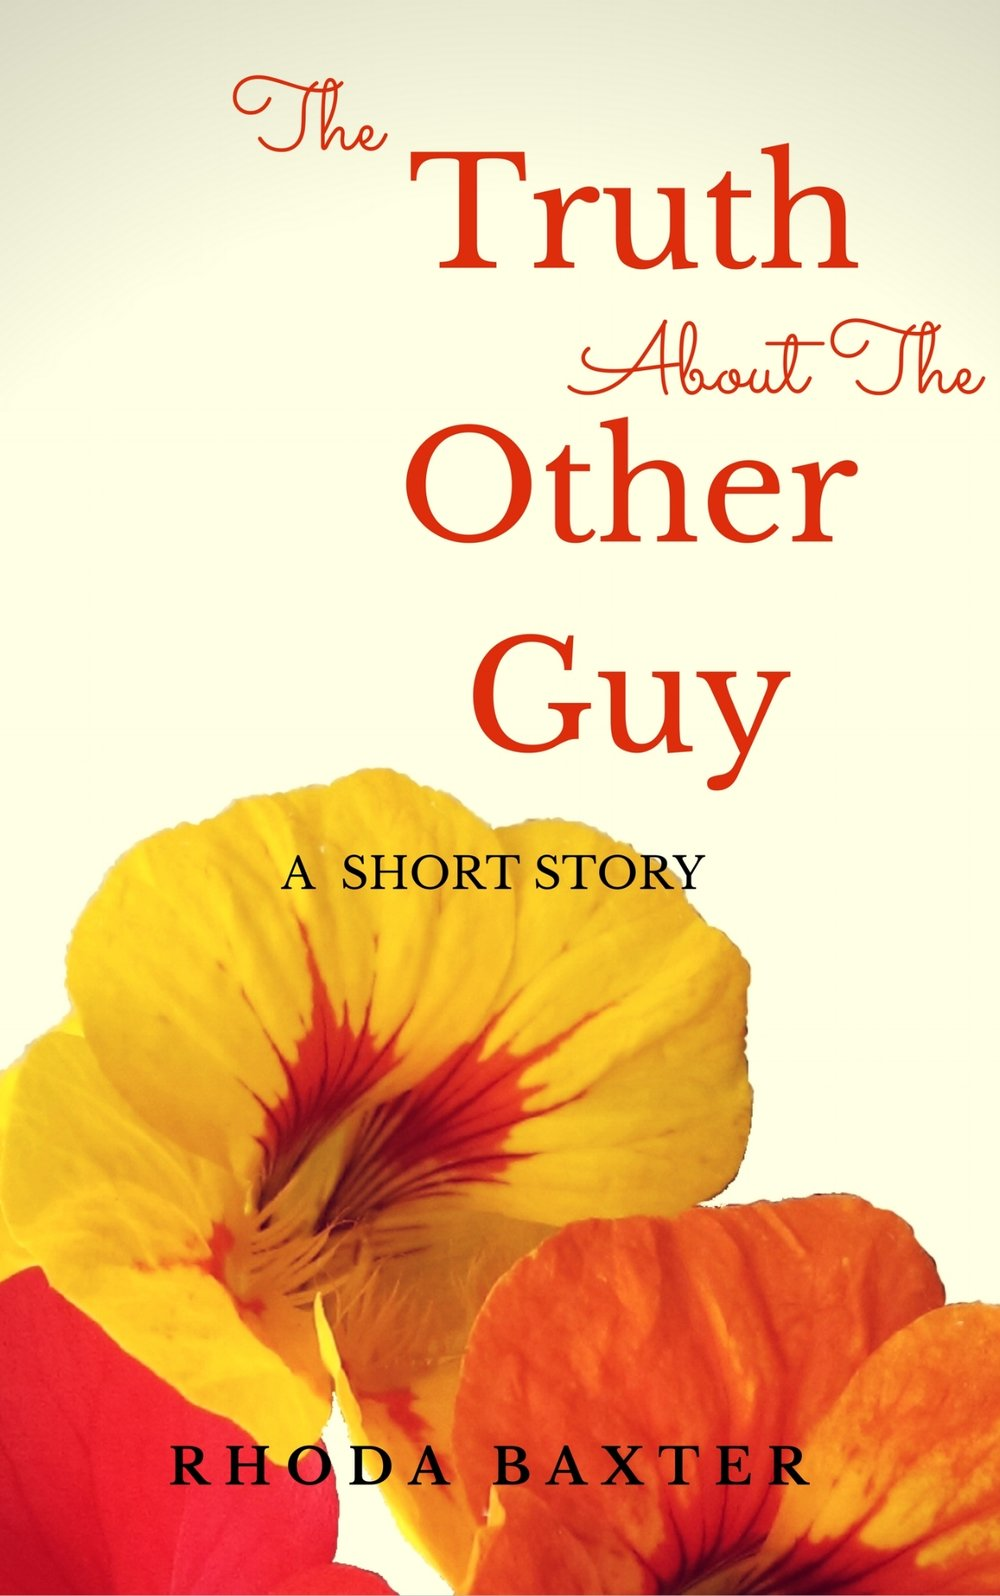 The Truth about the Other Guy - Rhoda Baxter    Aasha's mother is matchmaking… which is not going to end well, because her mother doesn't really know Aasha at all. Or does she?